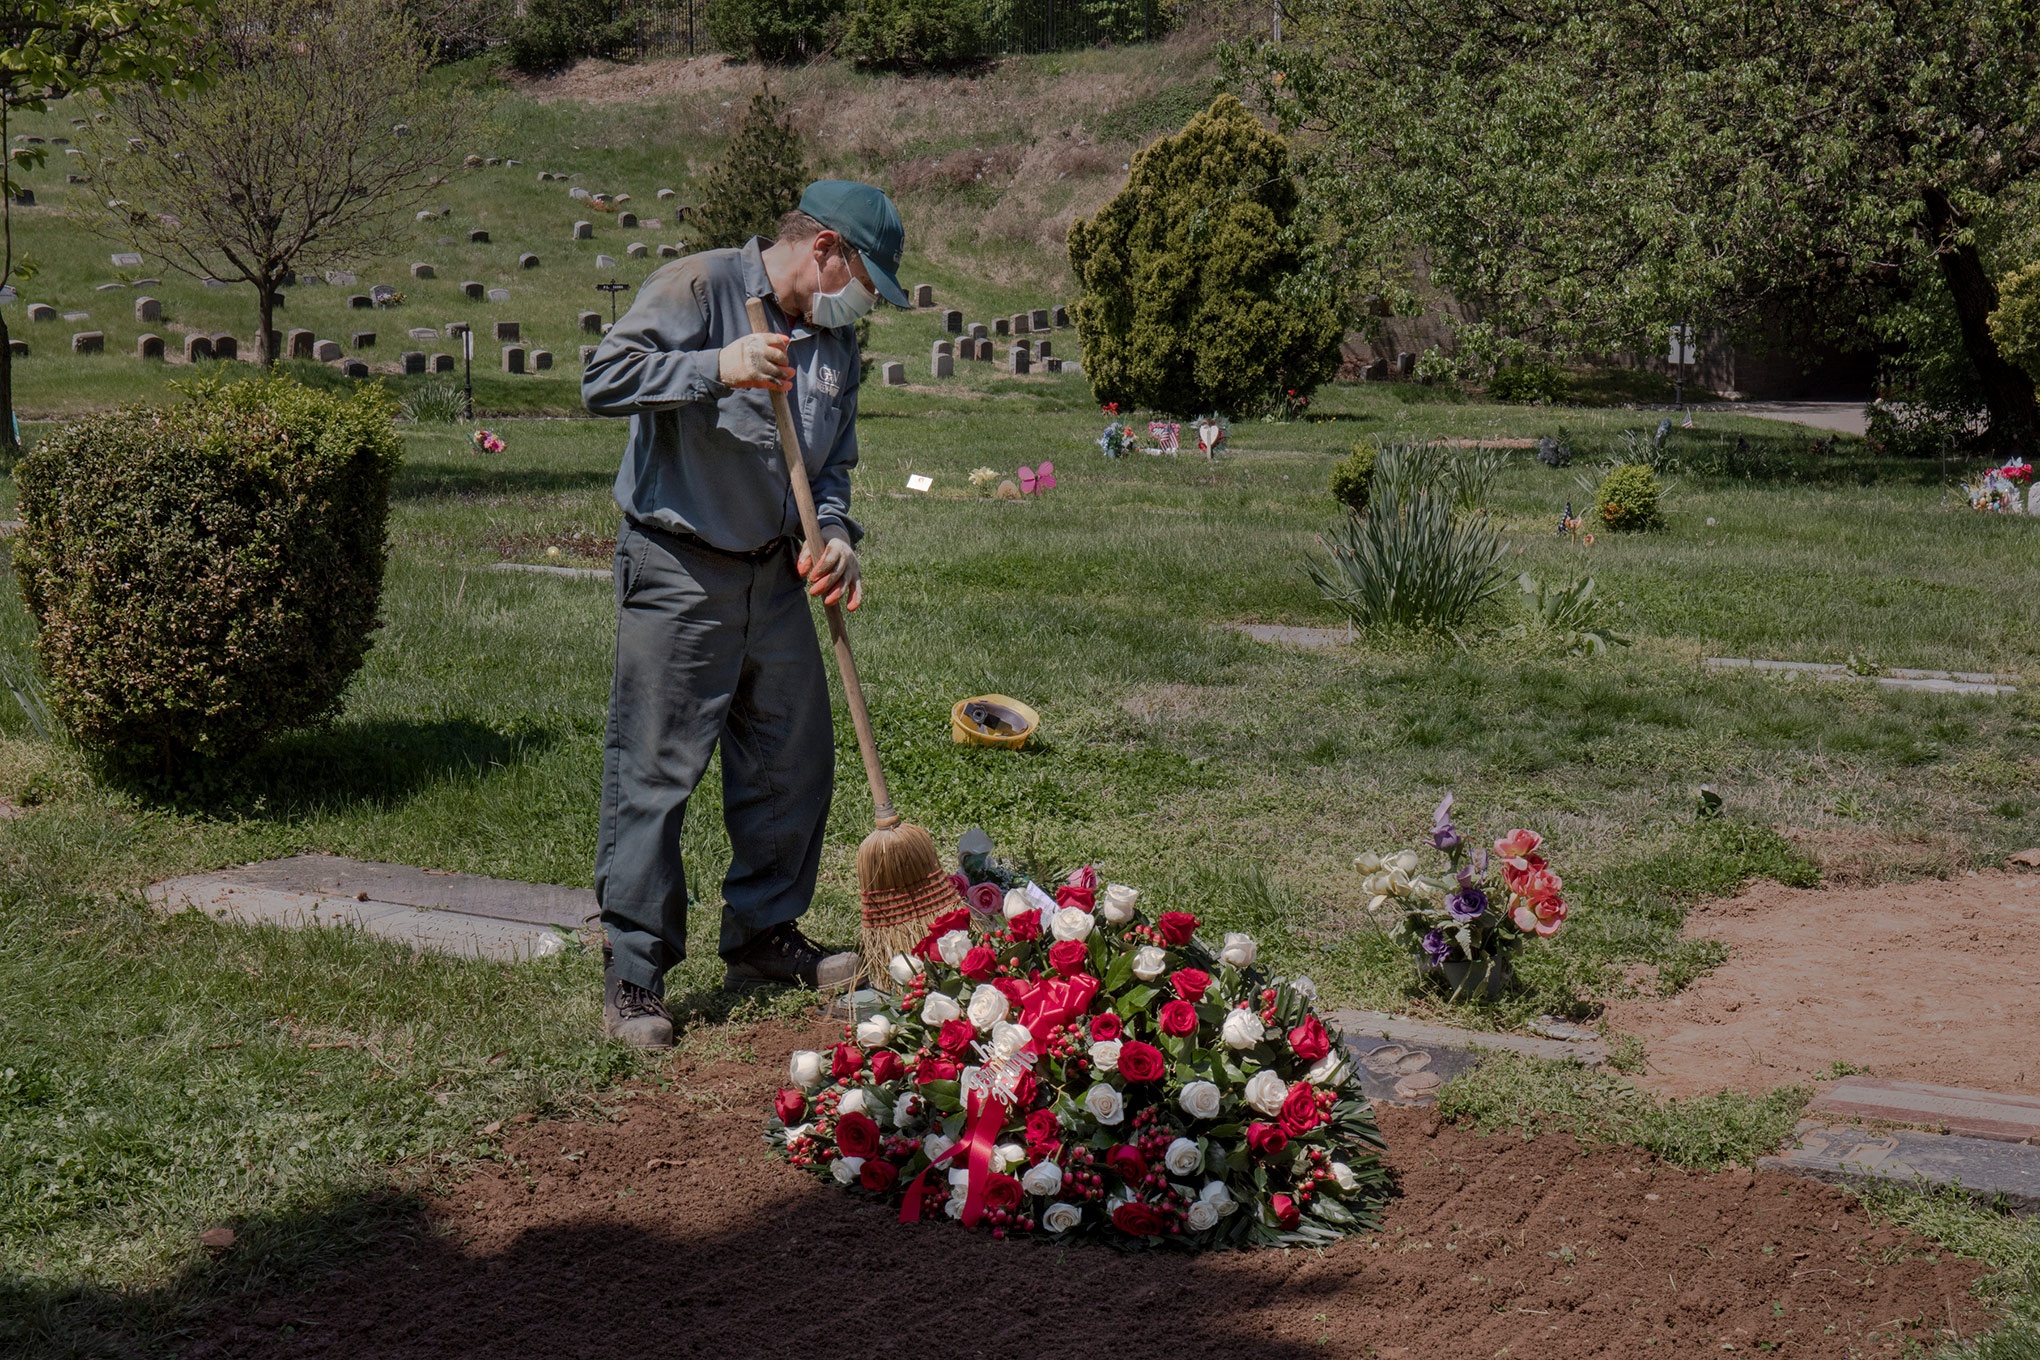 Social distancing regulations have made funerals lonely and rare. On May 4, Janusz Karkos tends the grave of a COVID-19 victim at Brooklyn's Green-Wood Cemetery.